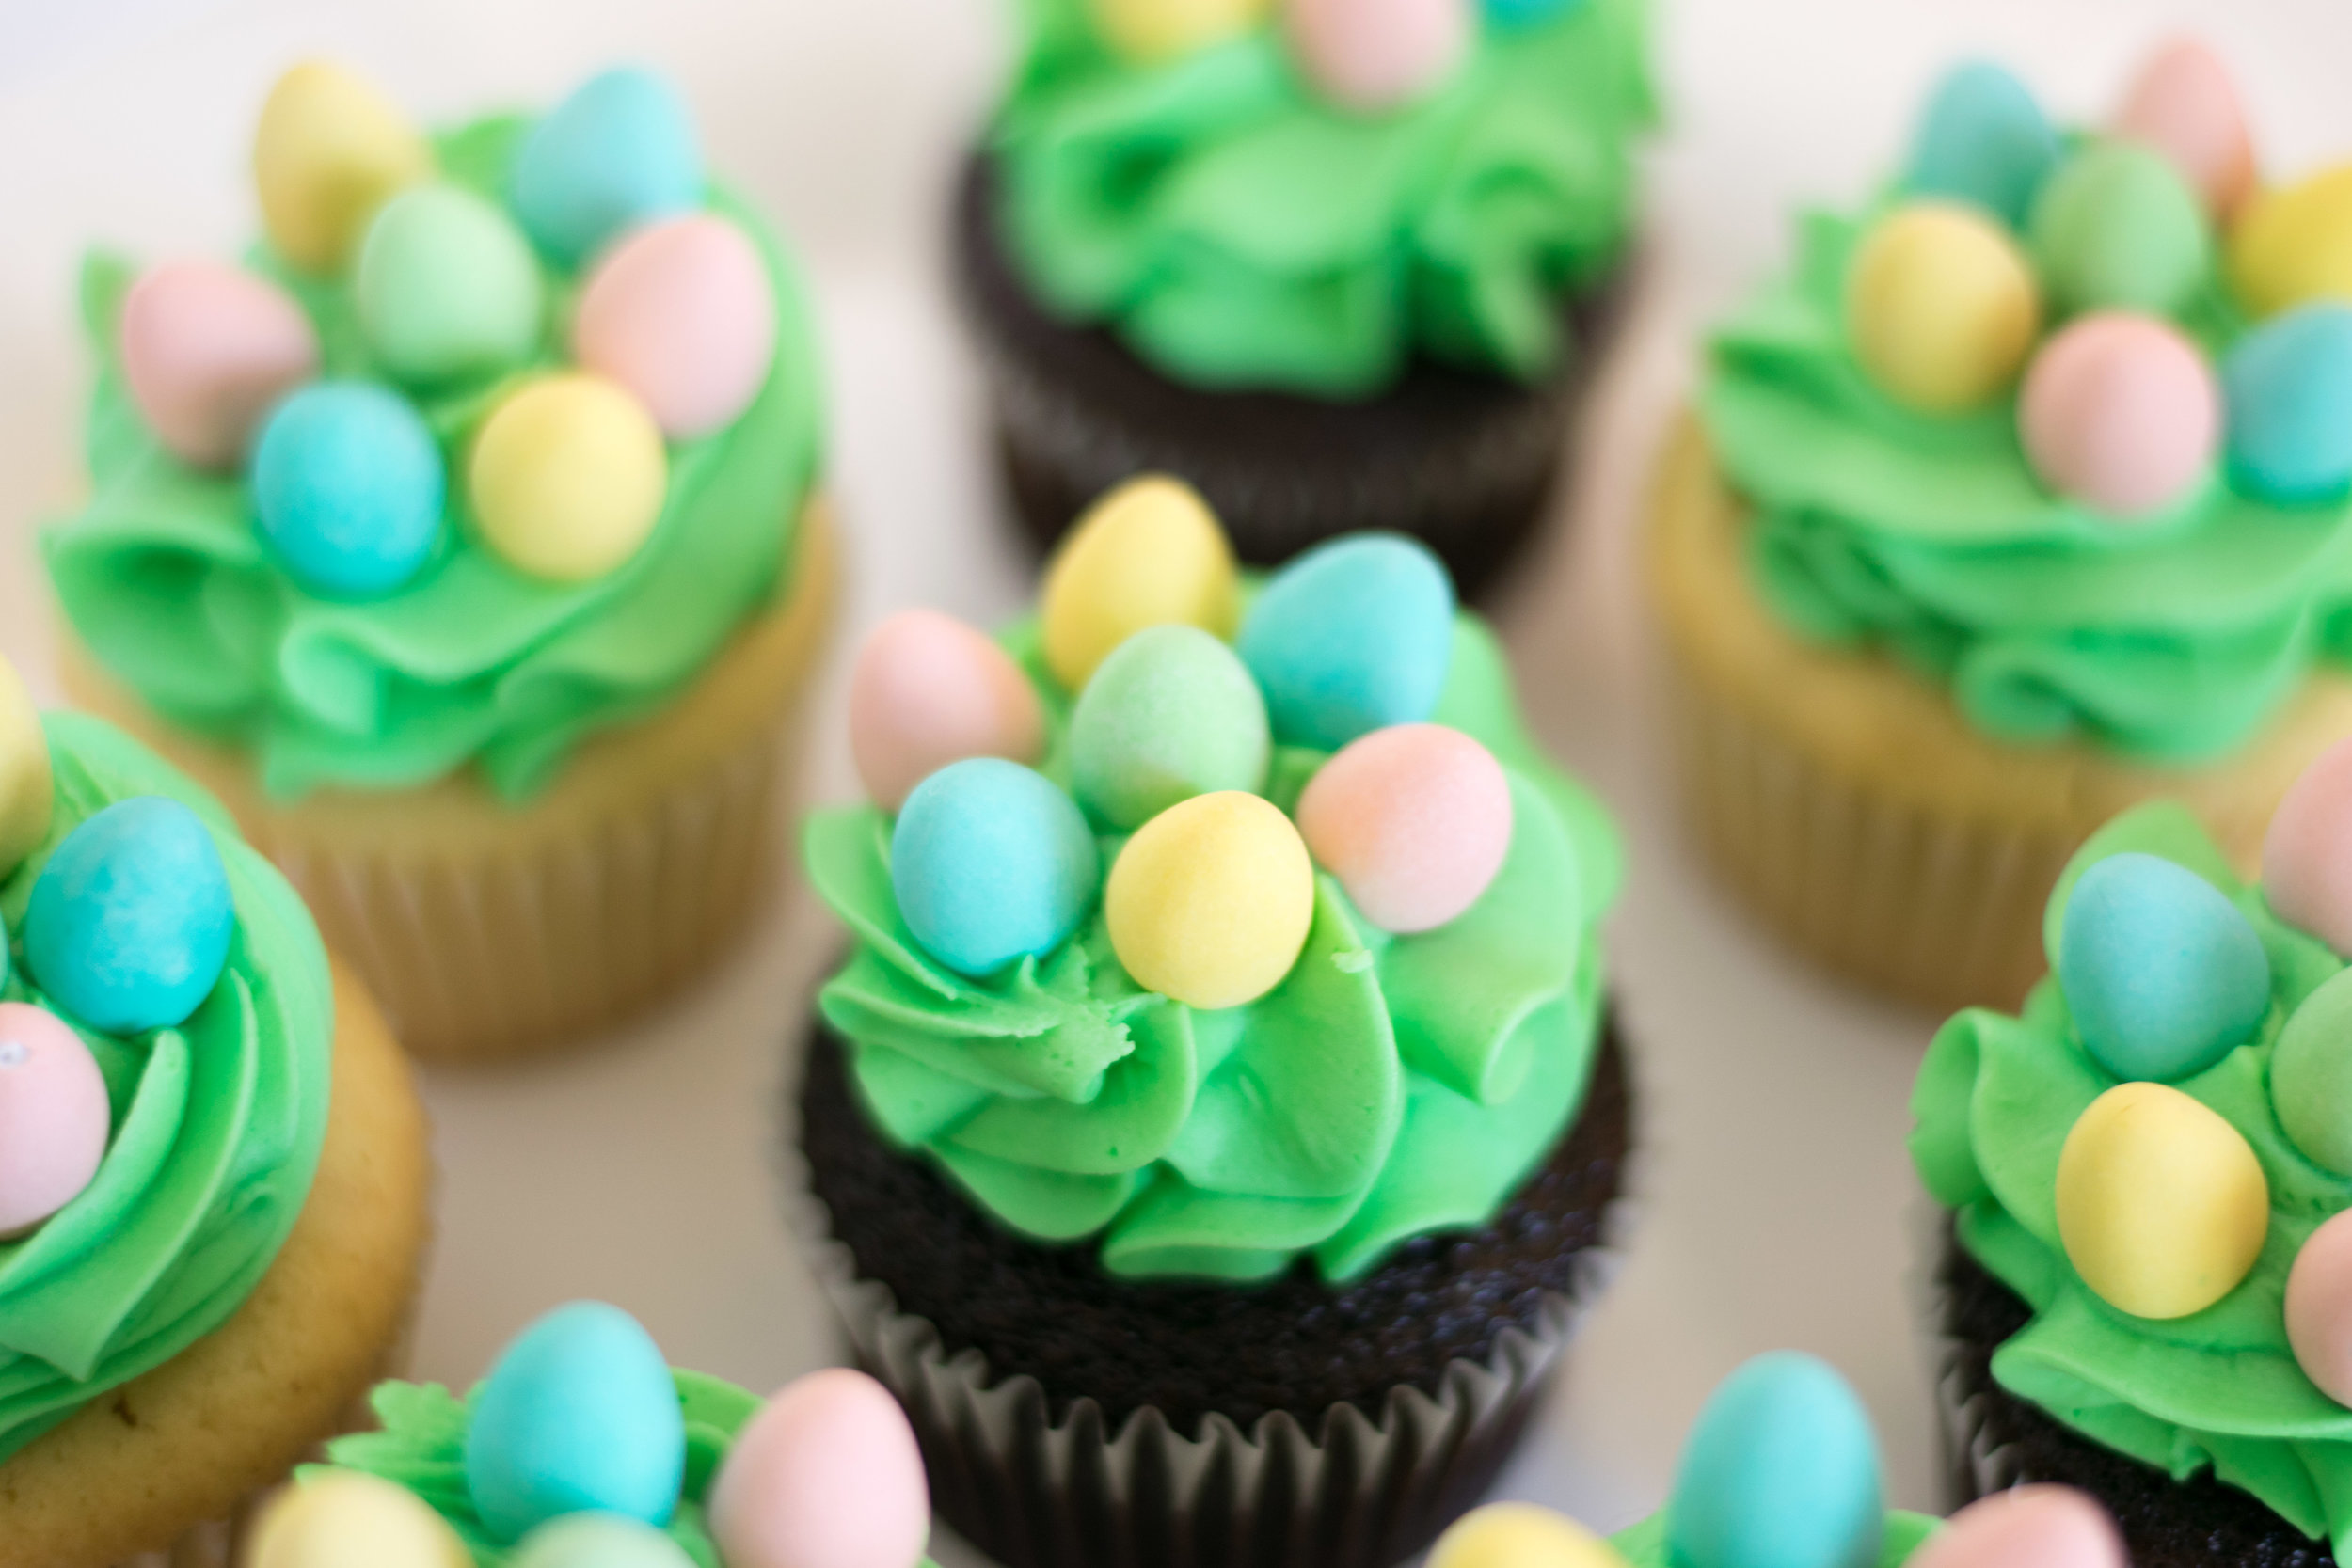 Nest Cupcakes:  Chocolate or Vanilla bases - $4.50